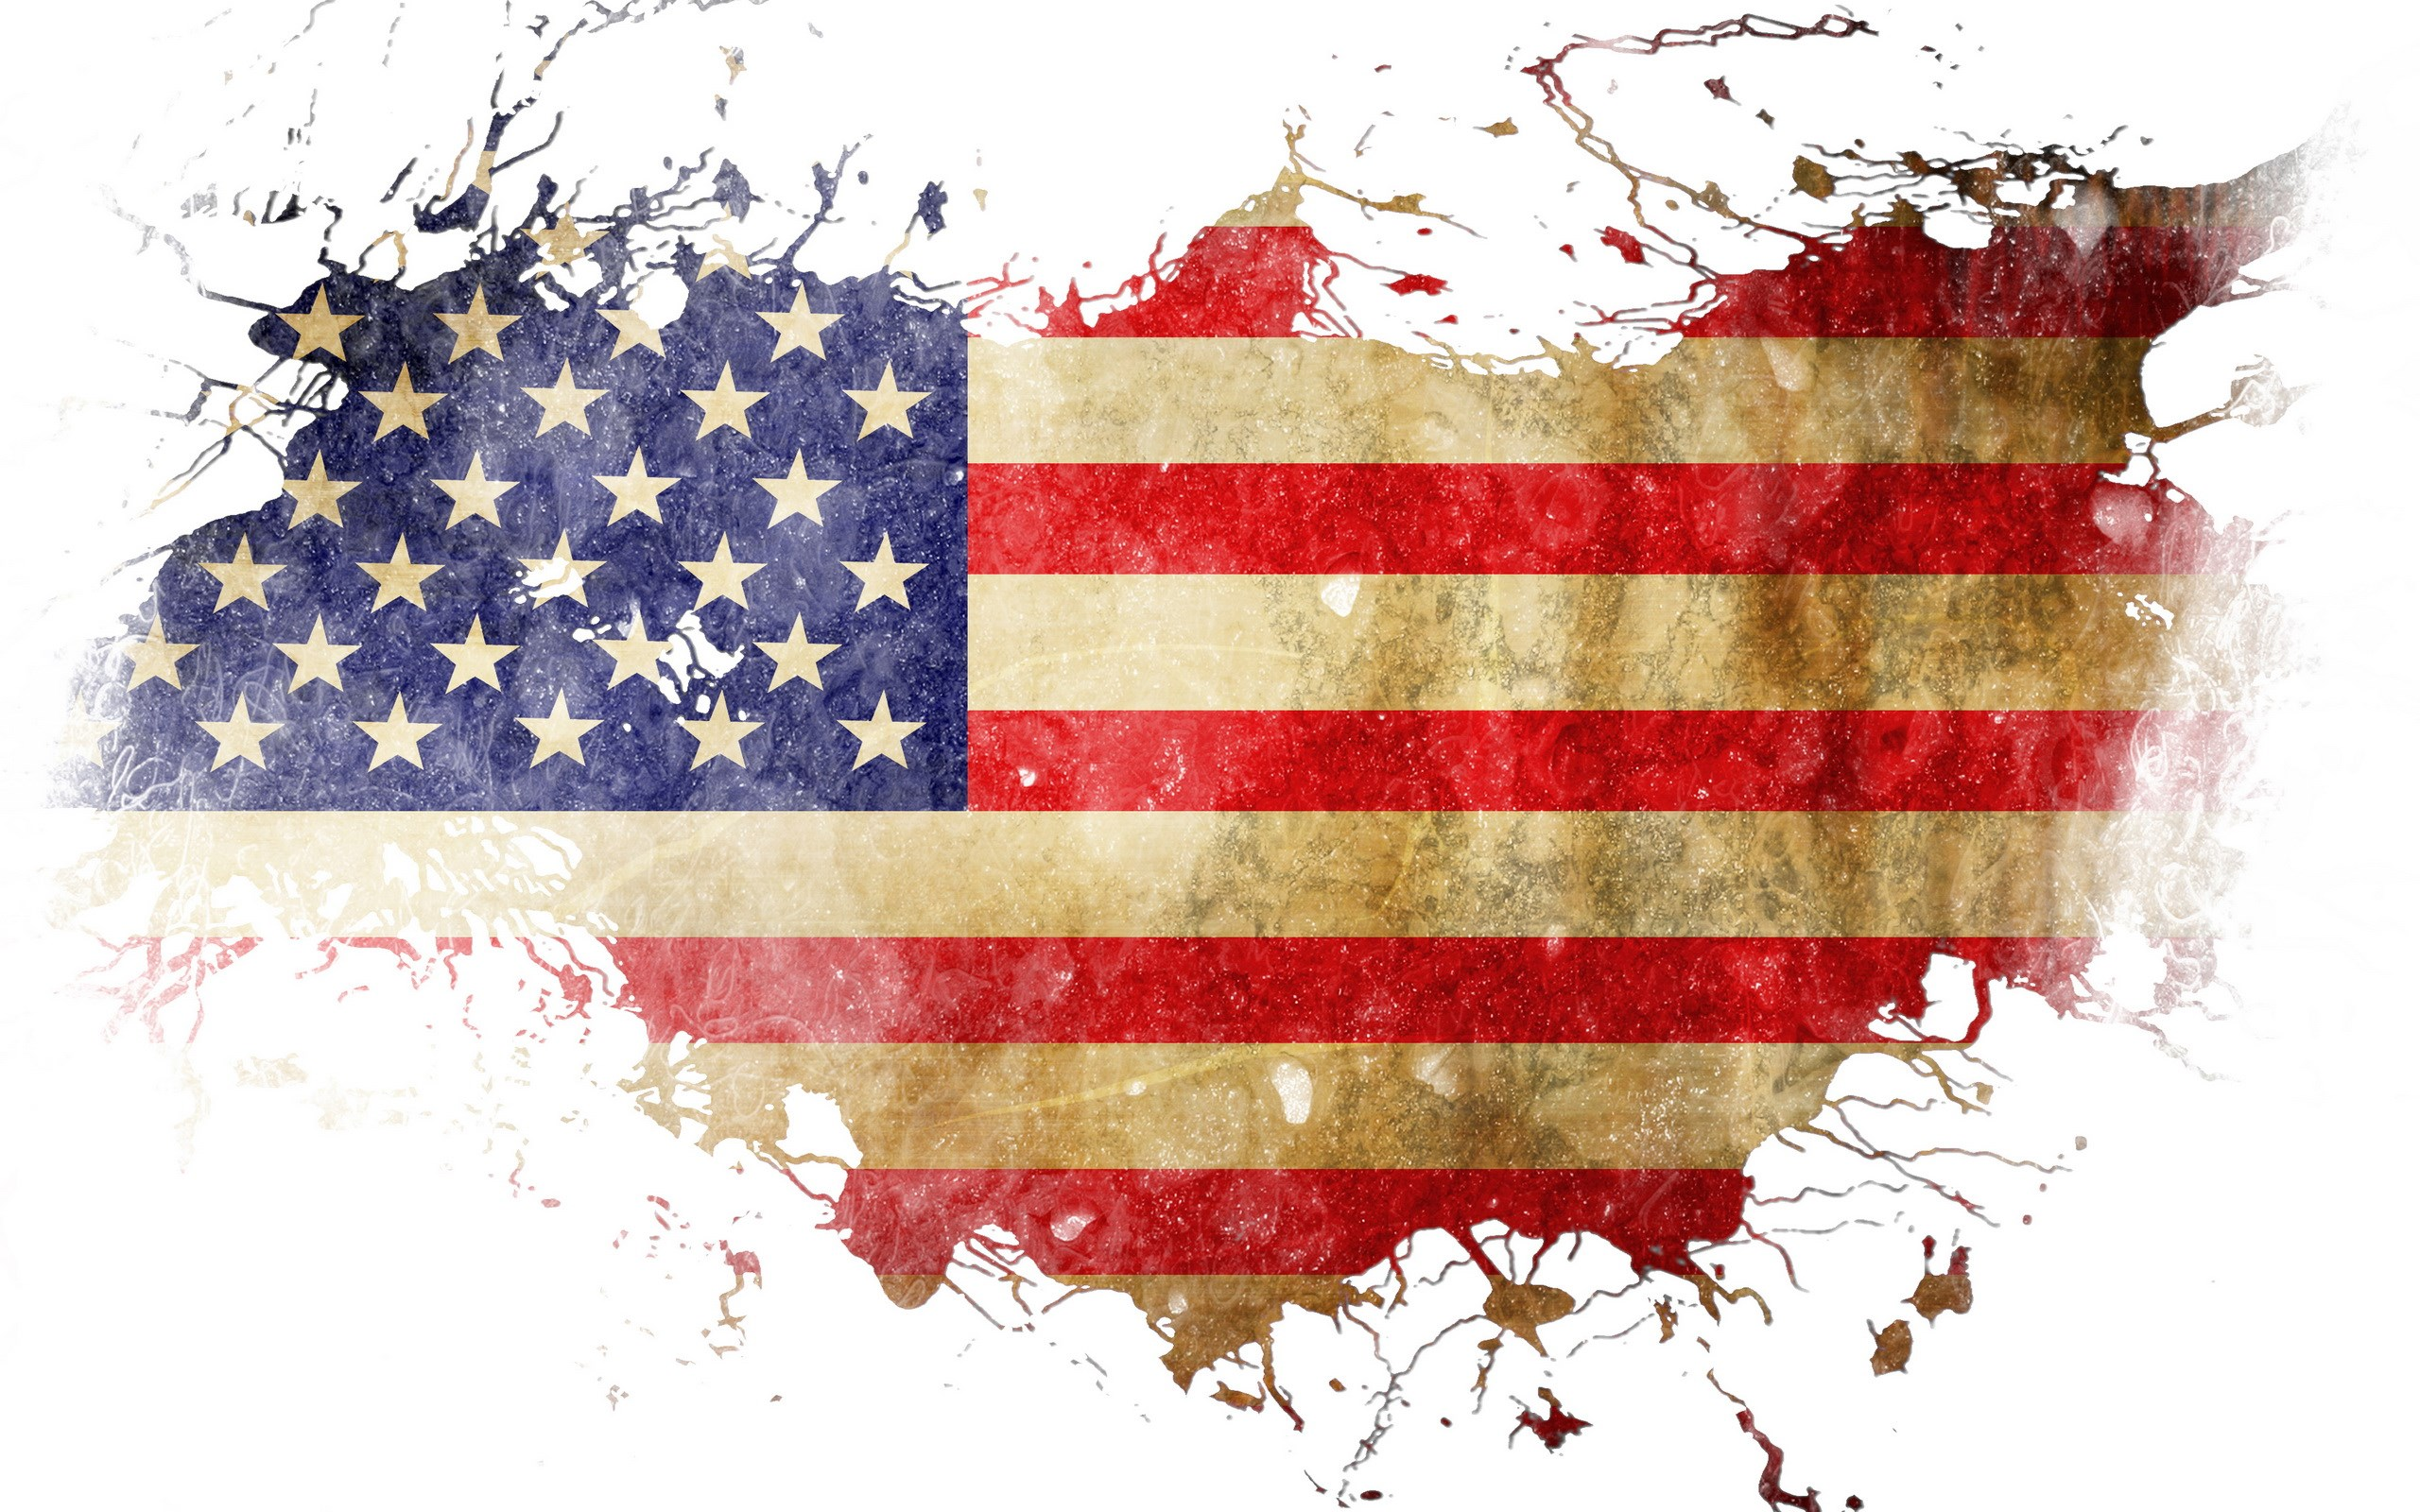 american-flag-1080p-windows-x-wallpaper-wp3602425